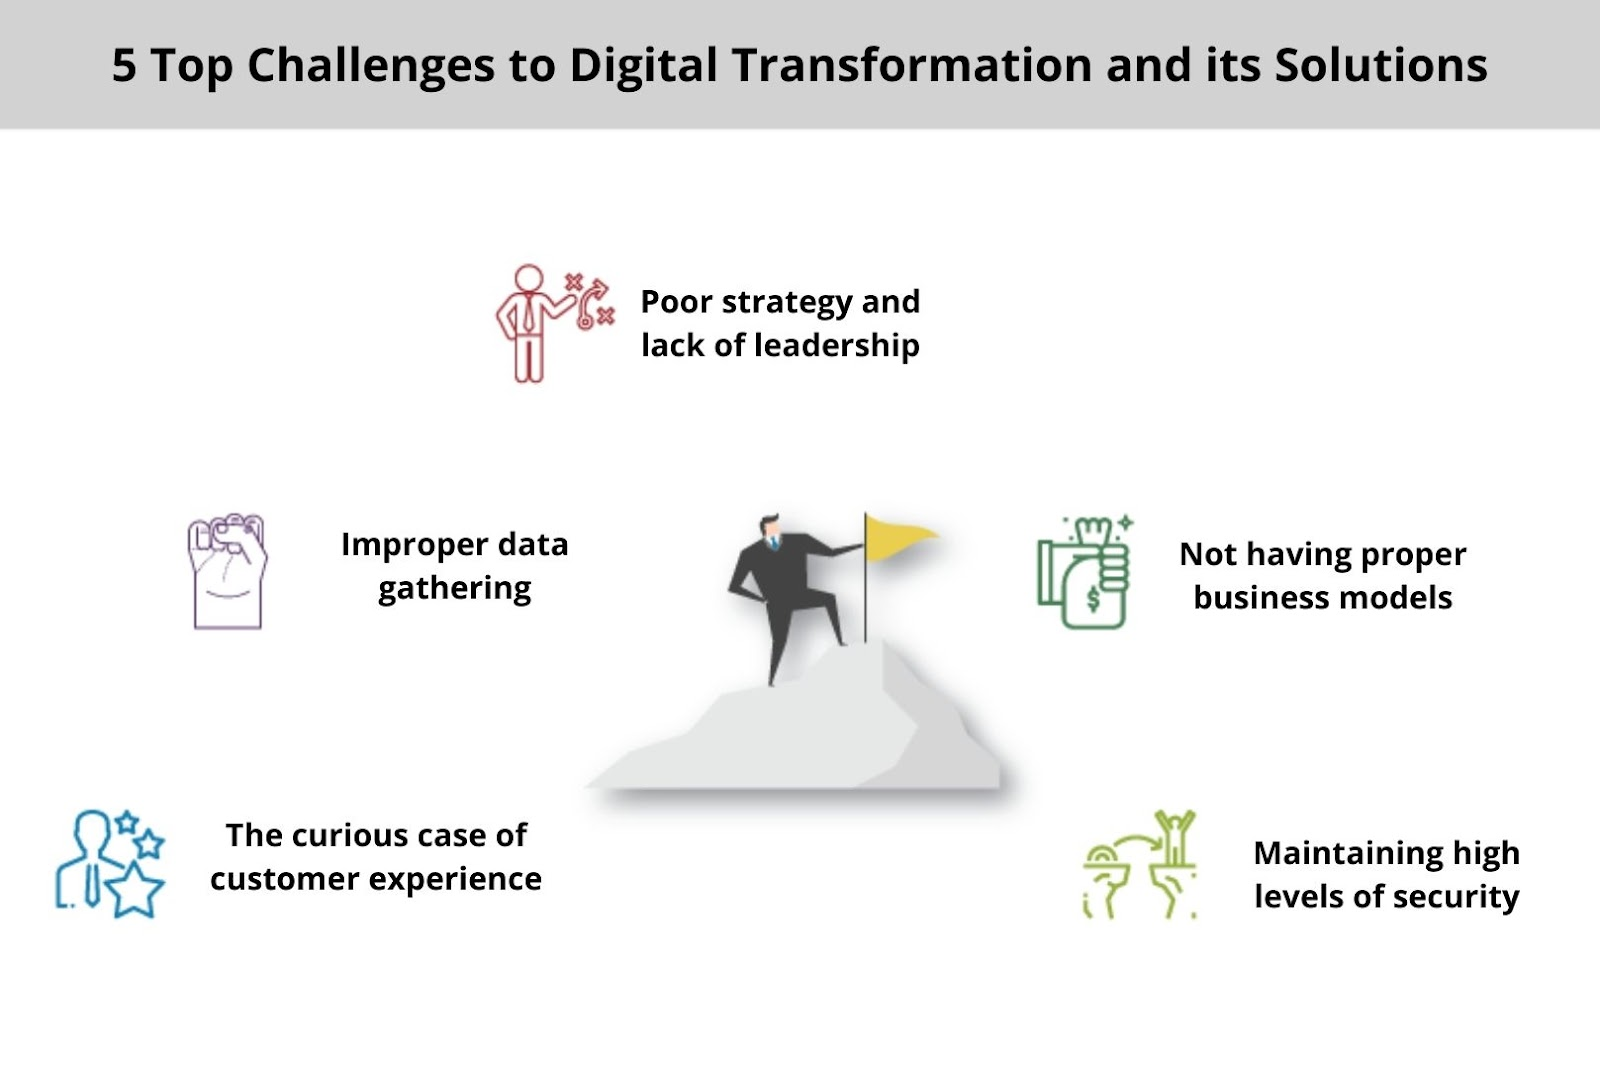 Digital Transformation challenges and solutions